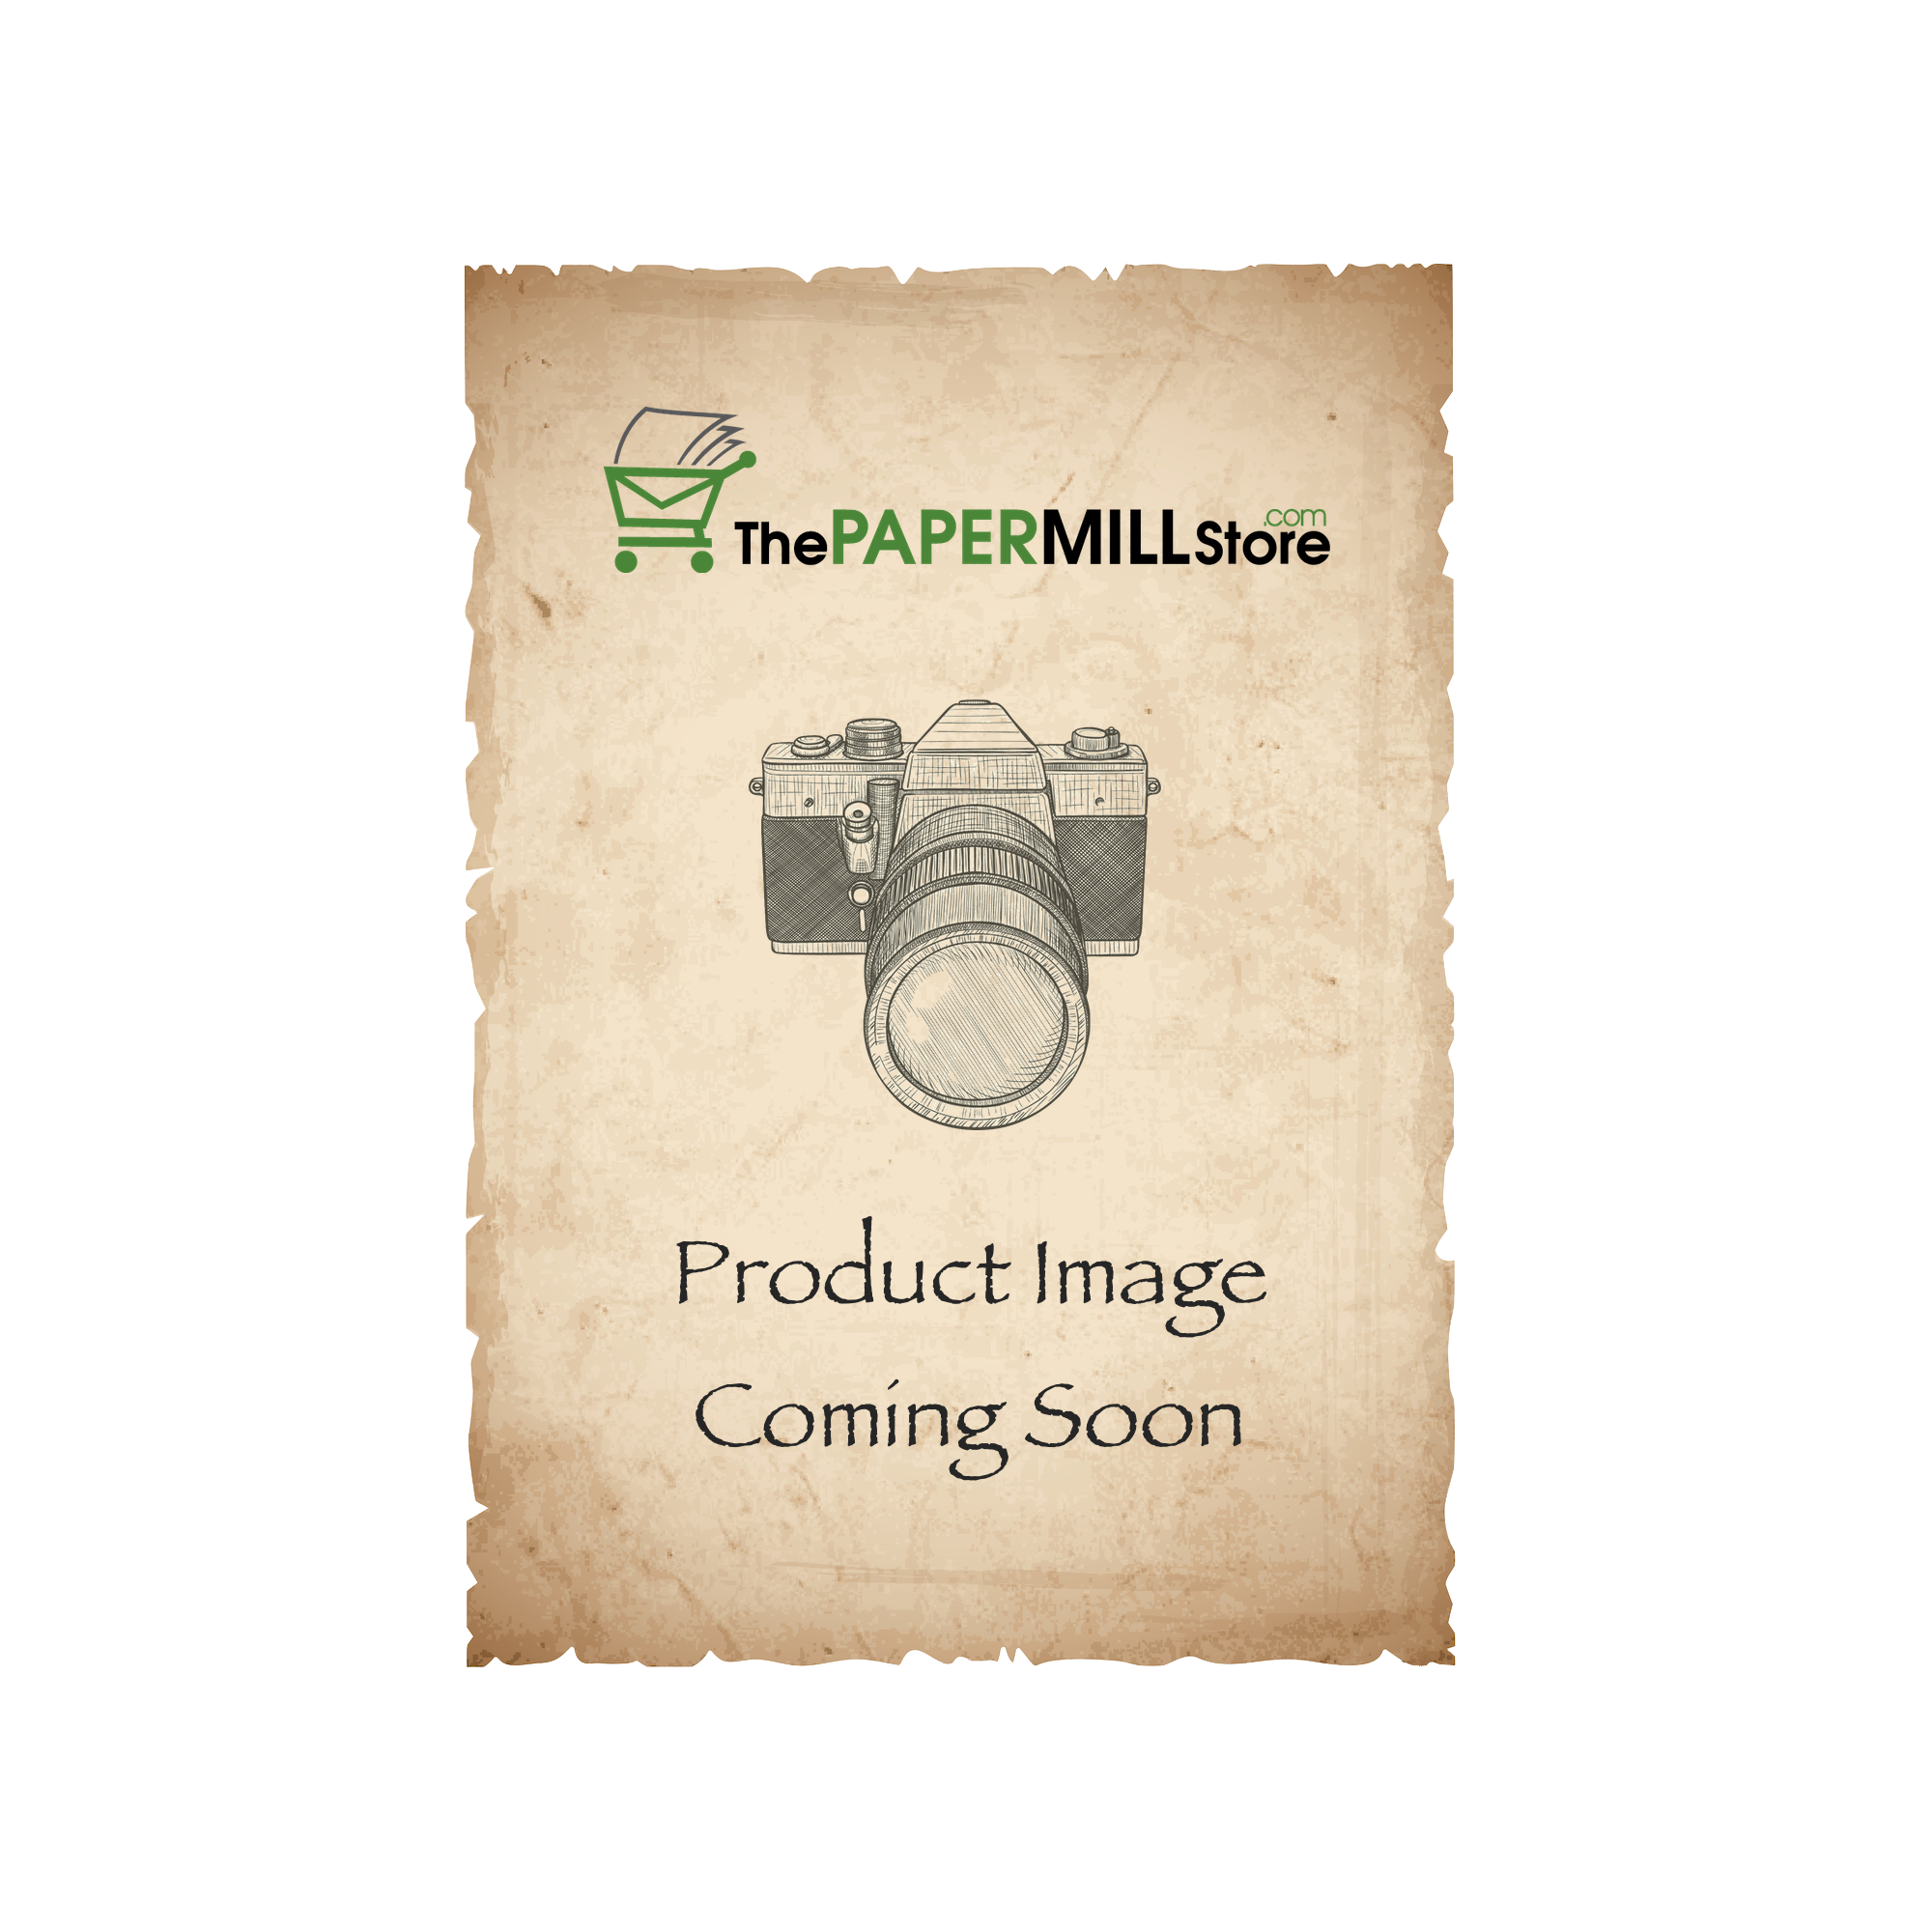 ESSE White Paper - 8 1/2 x 11 in 24 lb Writing Smooth  30% Recycled Watermarked 500 per Ream